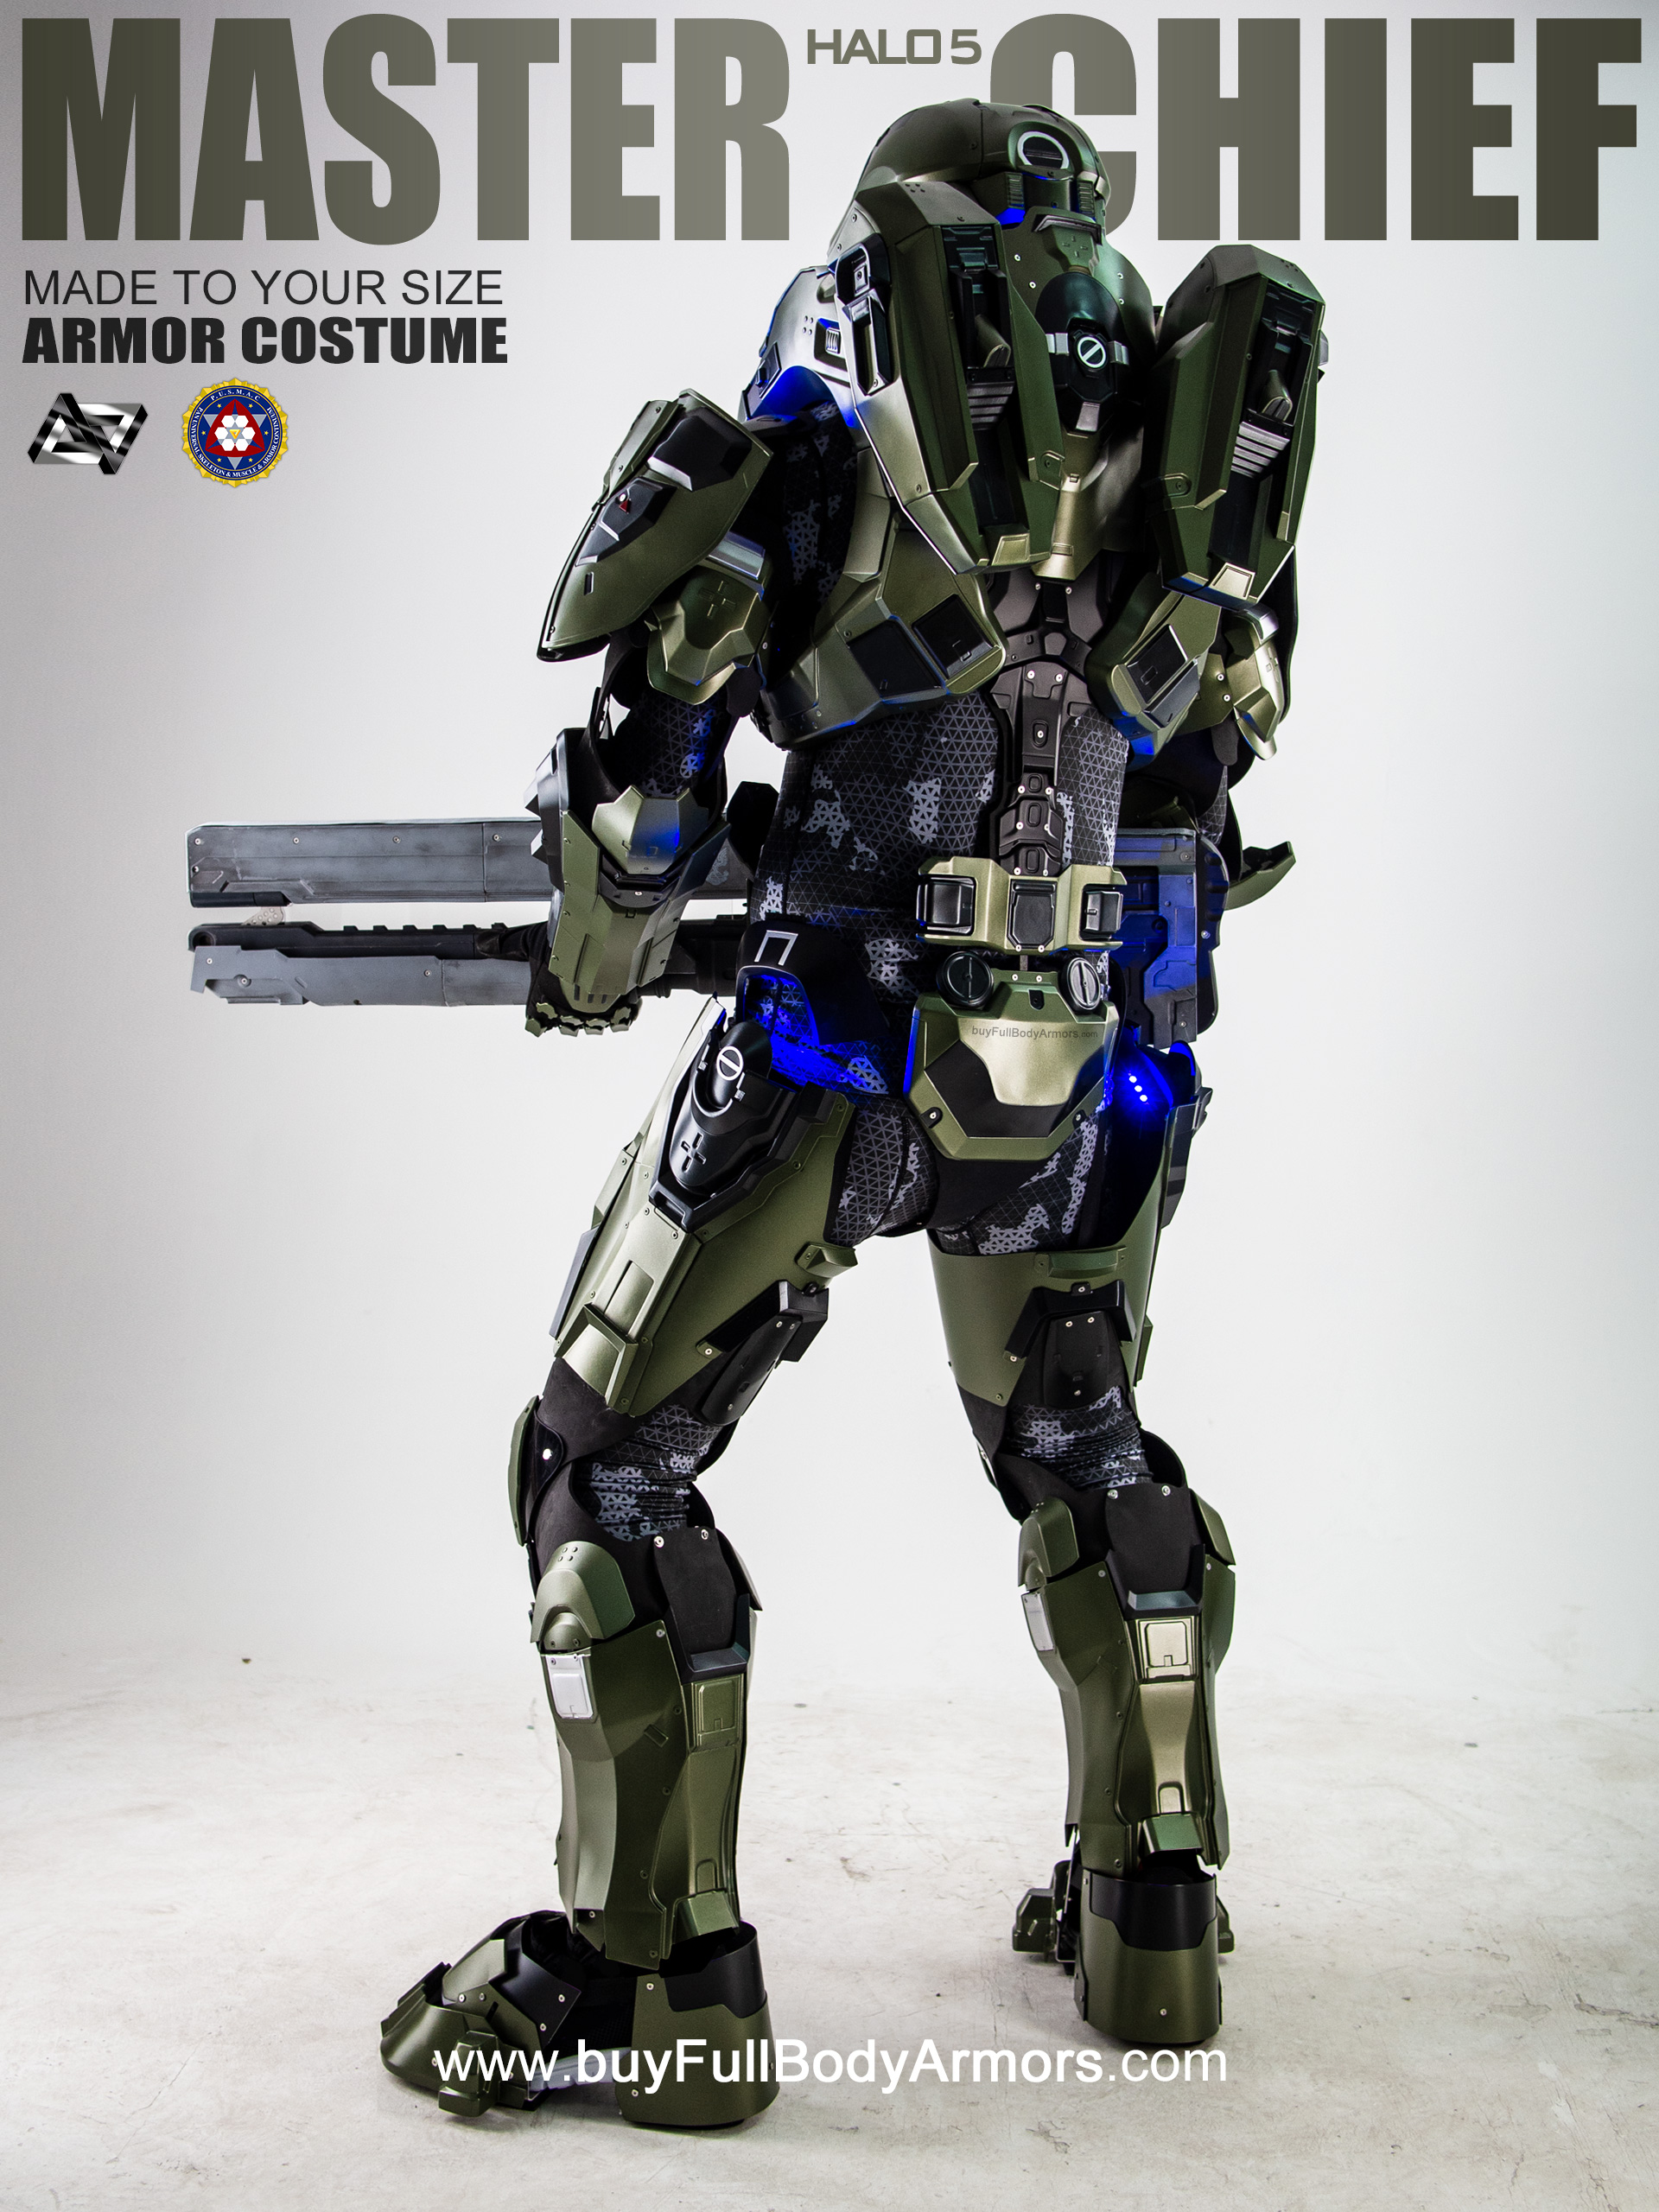 Halo 5 Master Chief Armor Suit Costume back